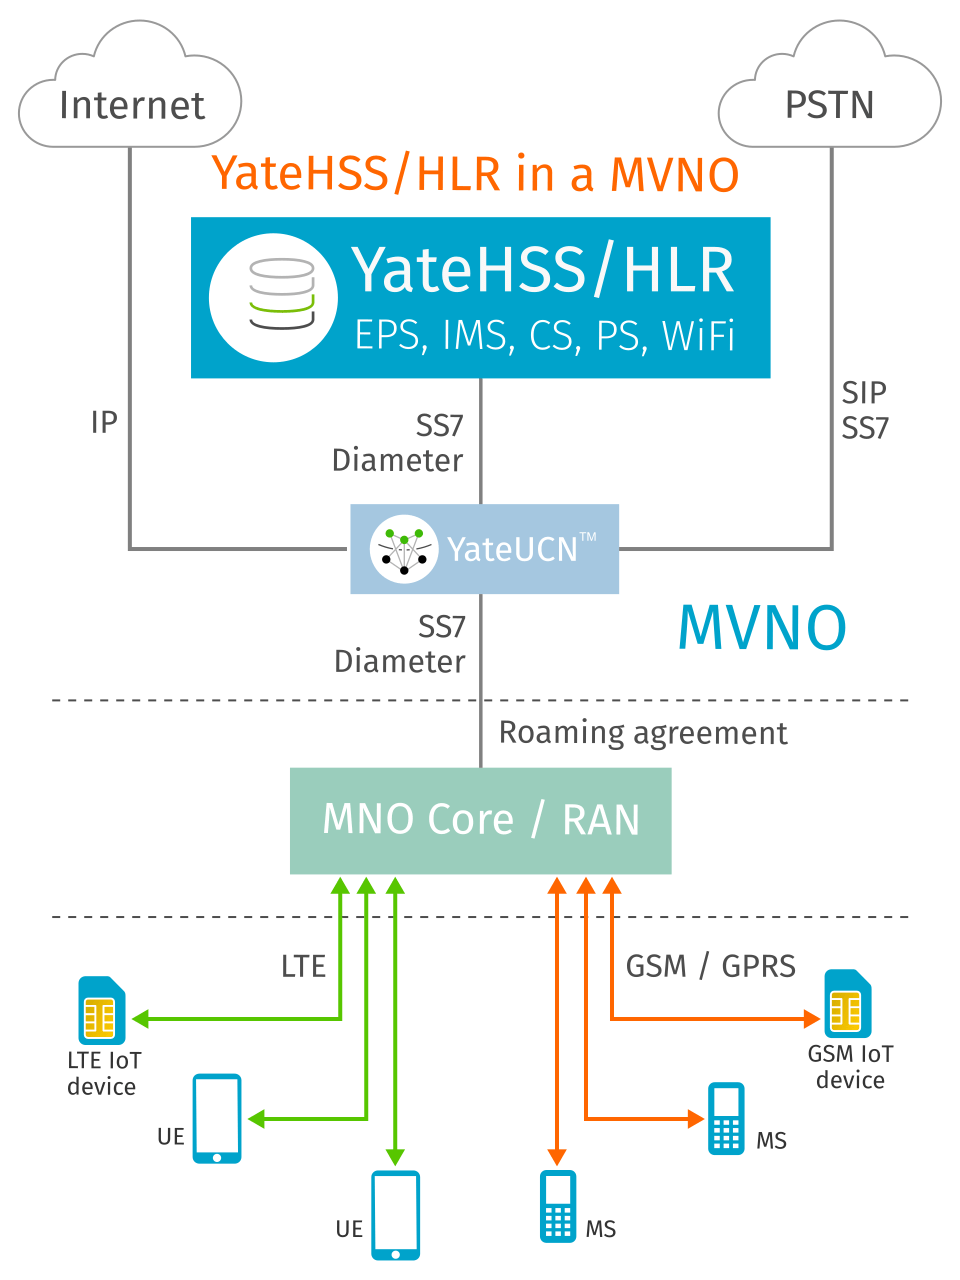 YateHSS/HLR, HSS and HLR in a LTE and GSM mobile virtual network operator MVNO